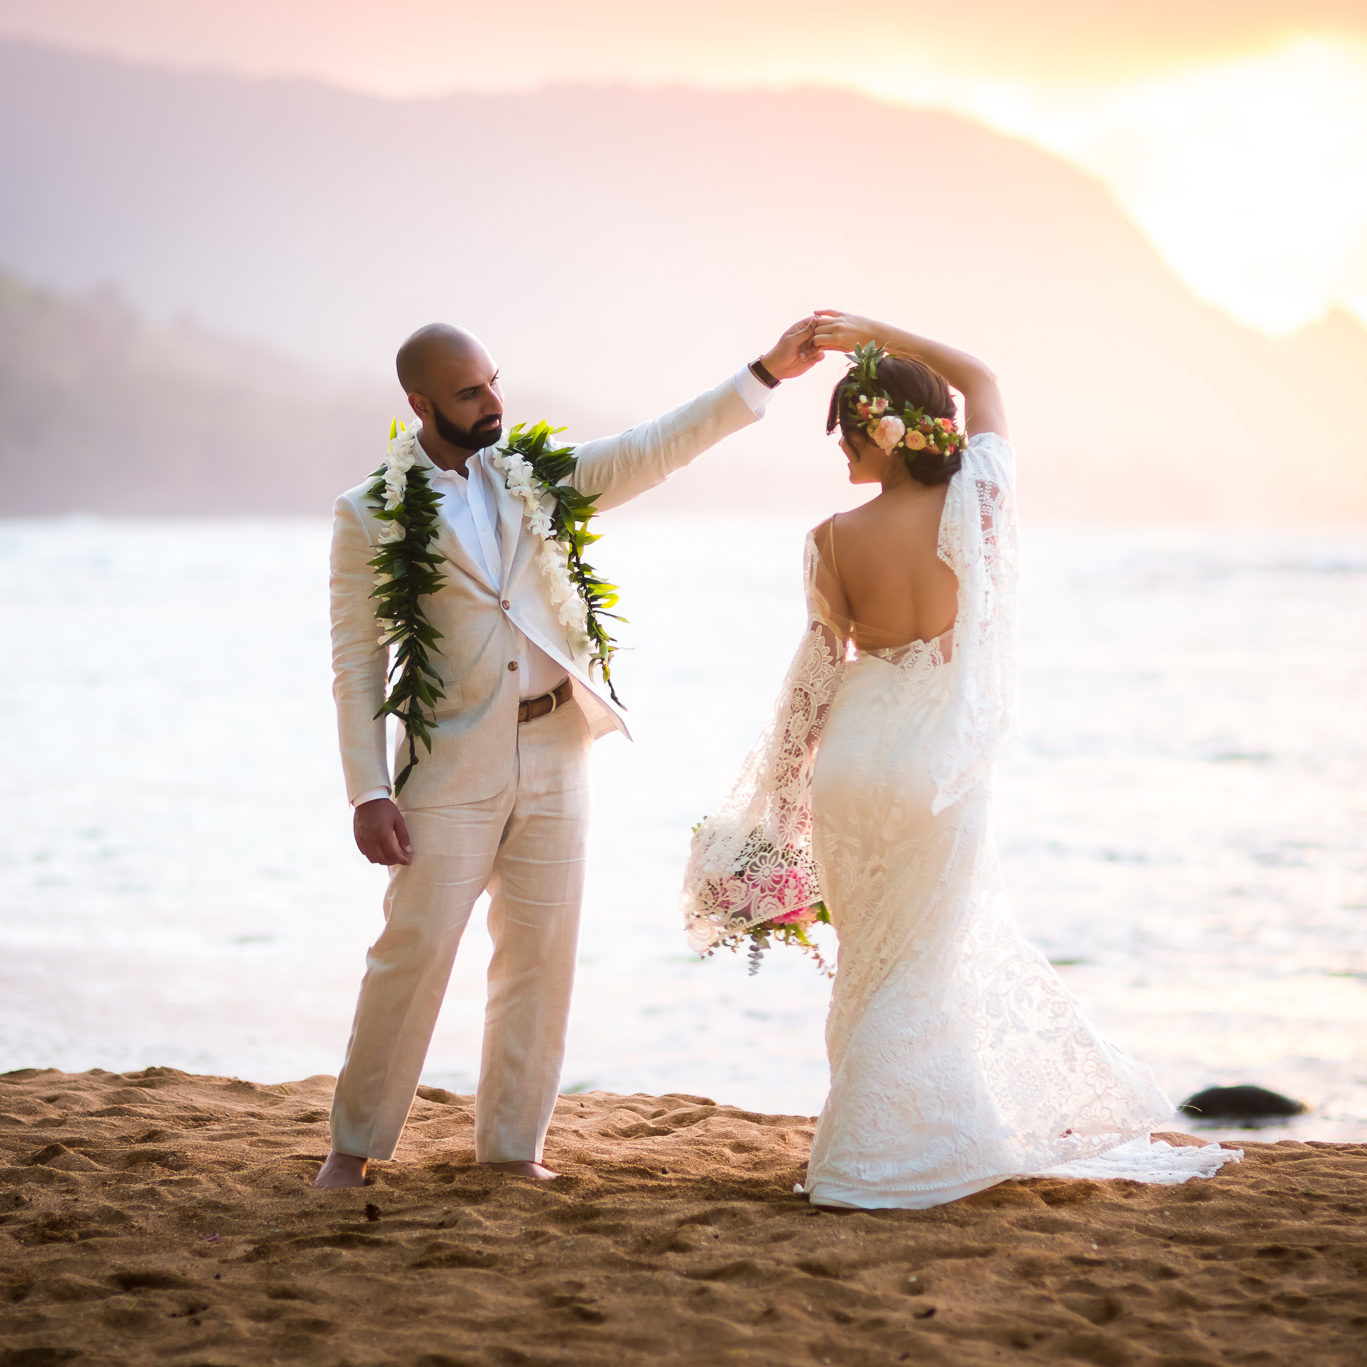 Bride and groom first dance on the beach as sunset